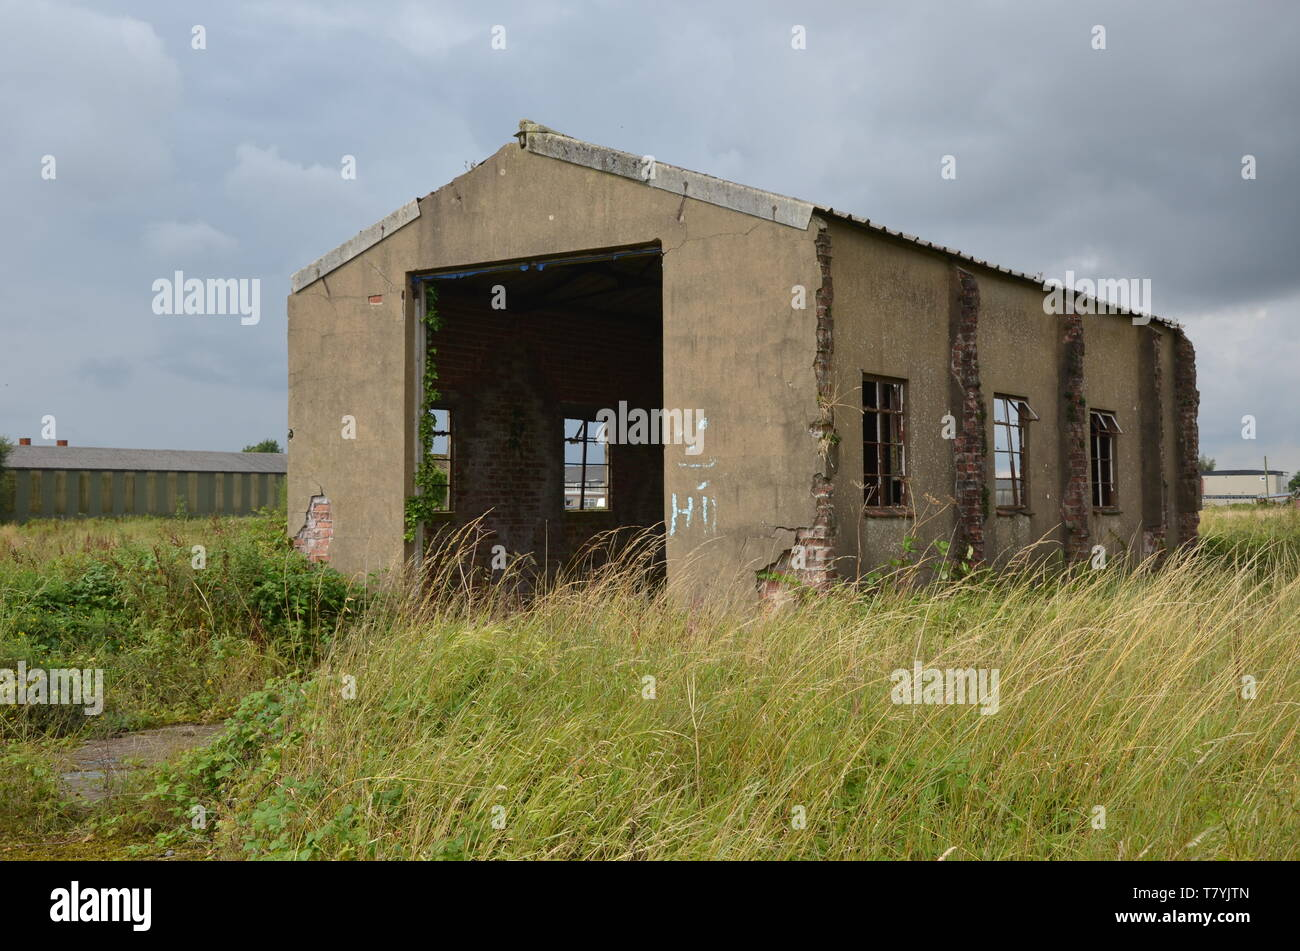 RAF Tholthorpe fire tender shed, ww2 military airfield Stock Photo